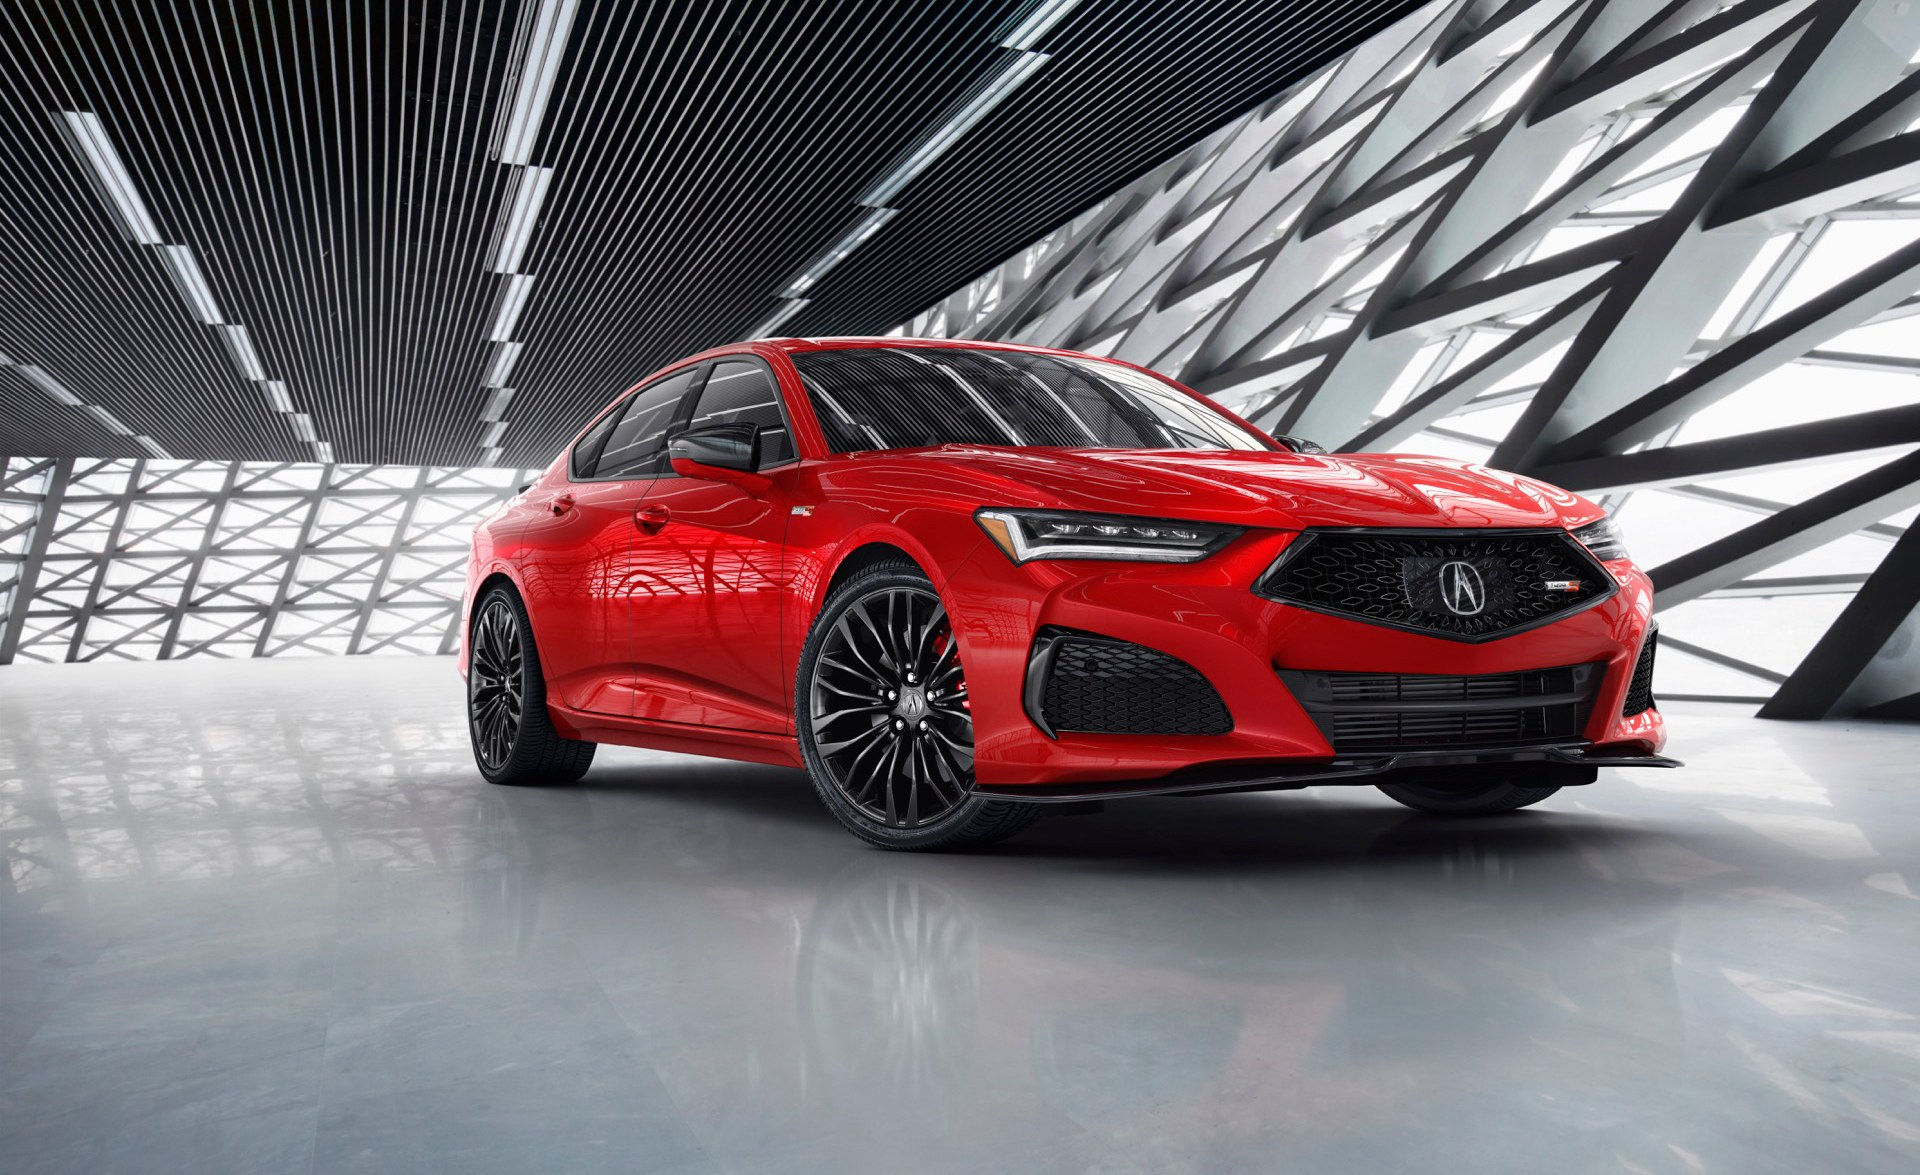 2021 Acura Tlx Revealed All Turbo Power And A Focus On